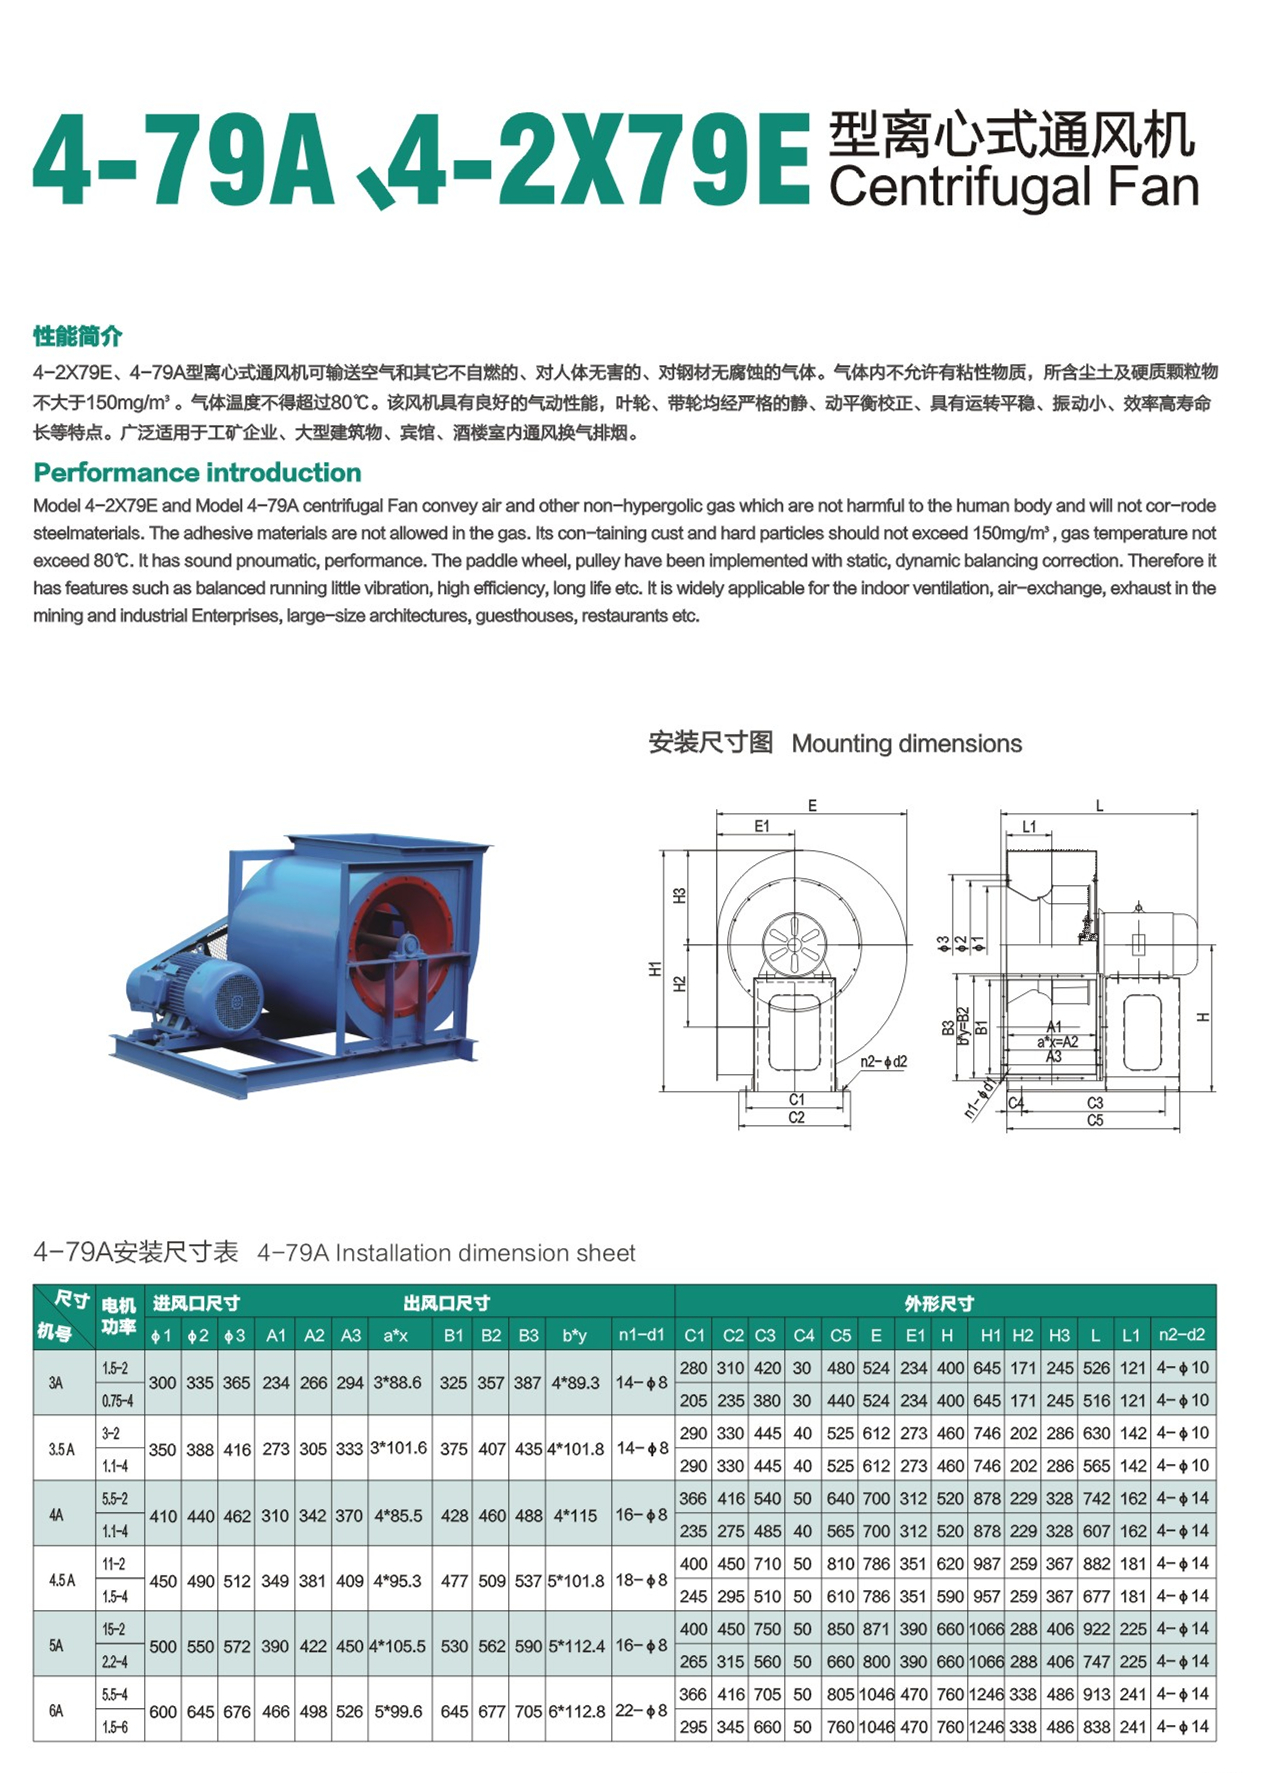 Large air volume industrial 4-79A/4-2X79E centrifugal fan with low sound